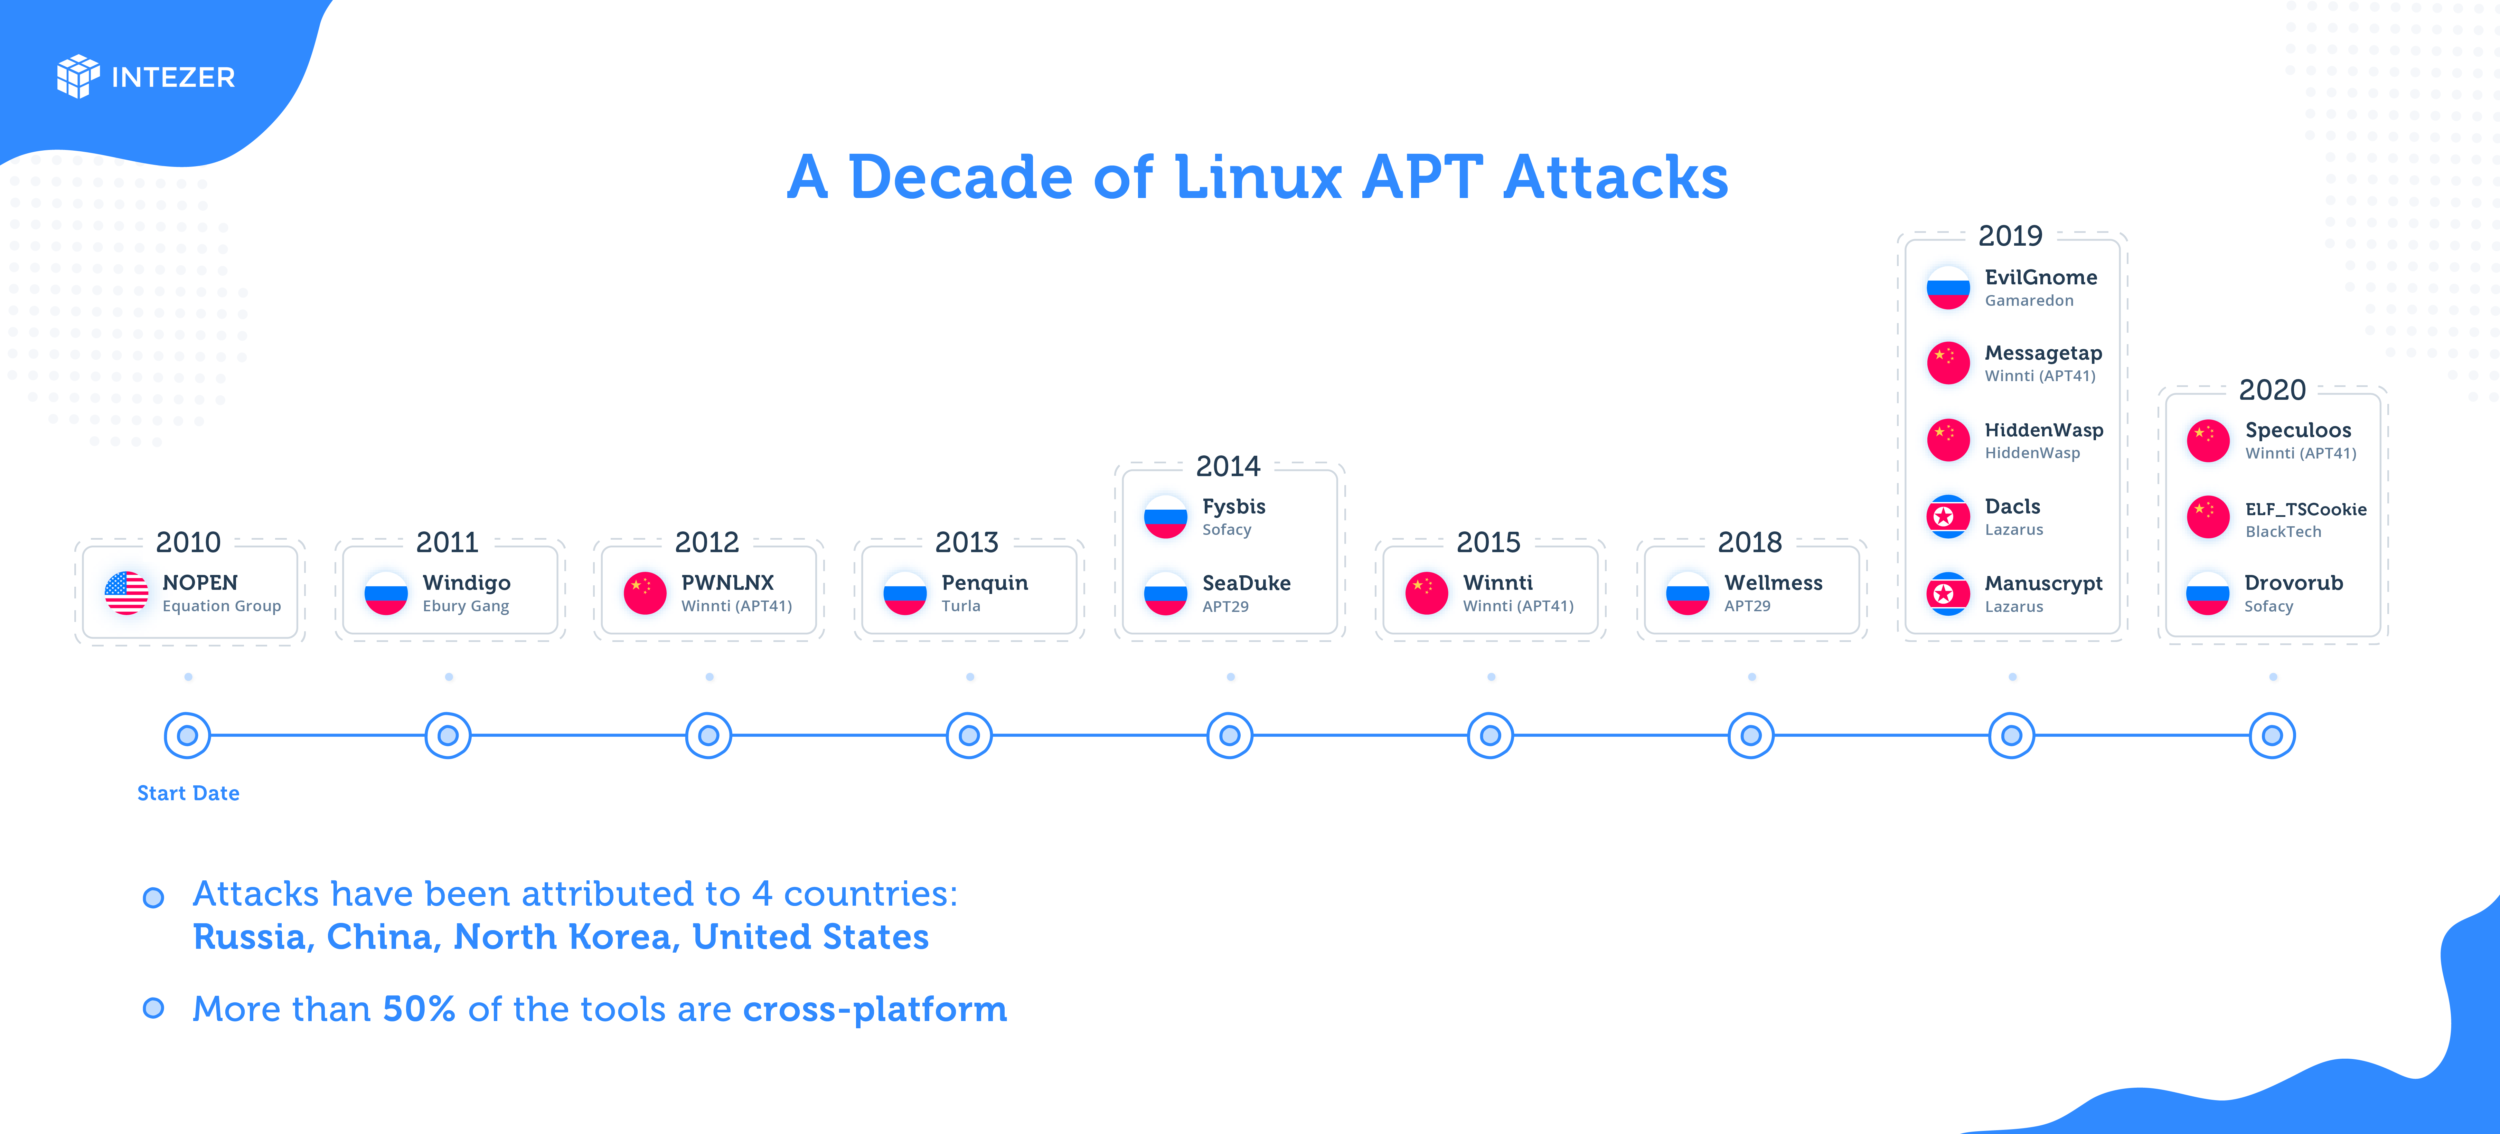 Decade of Linux APT Attacks